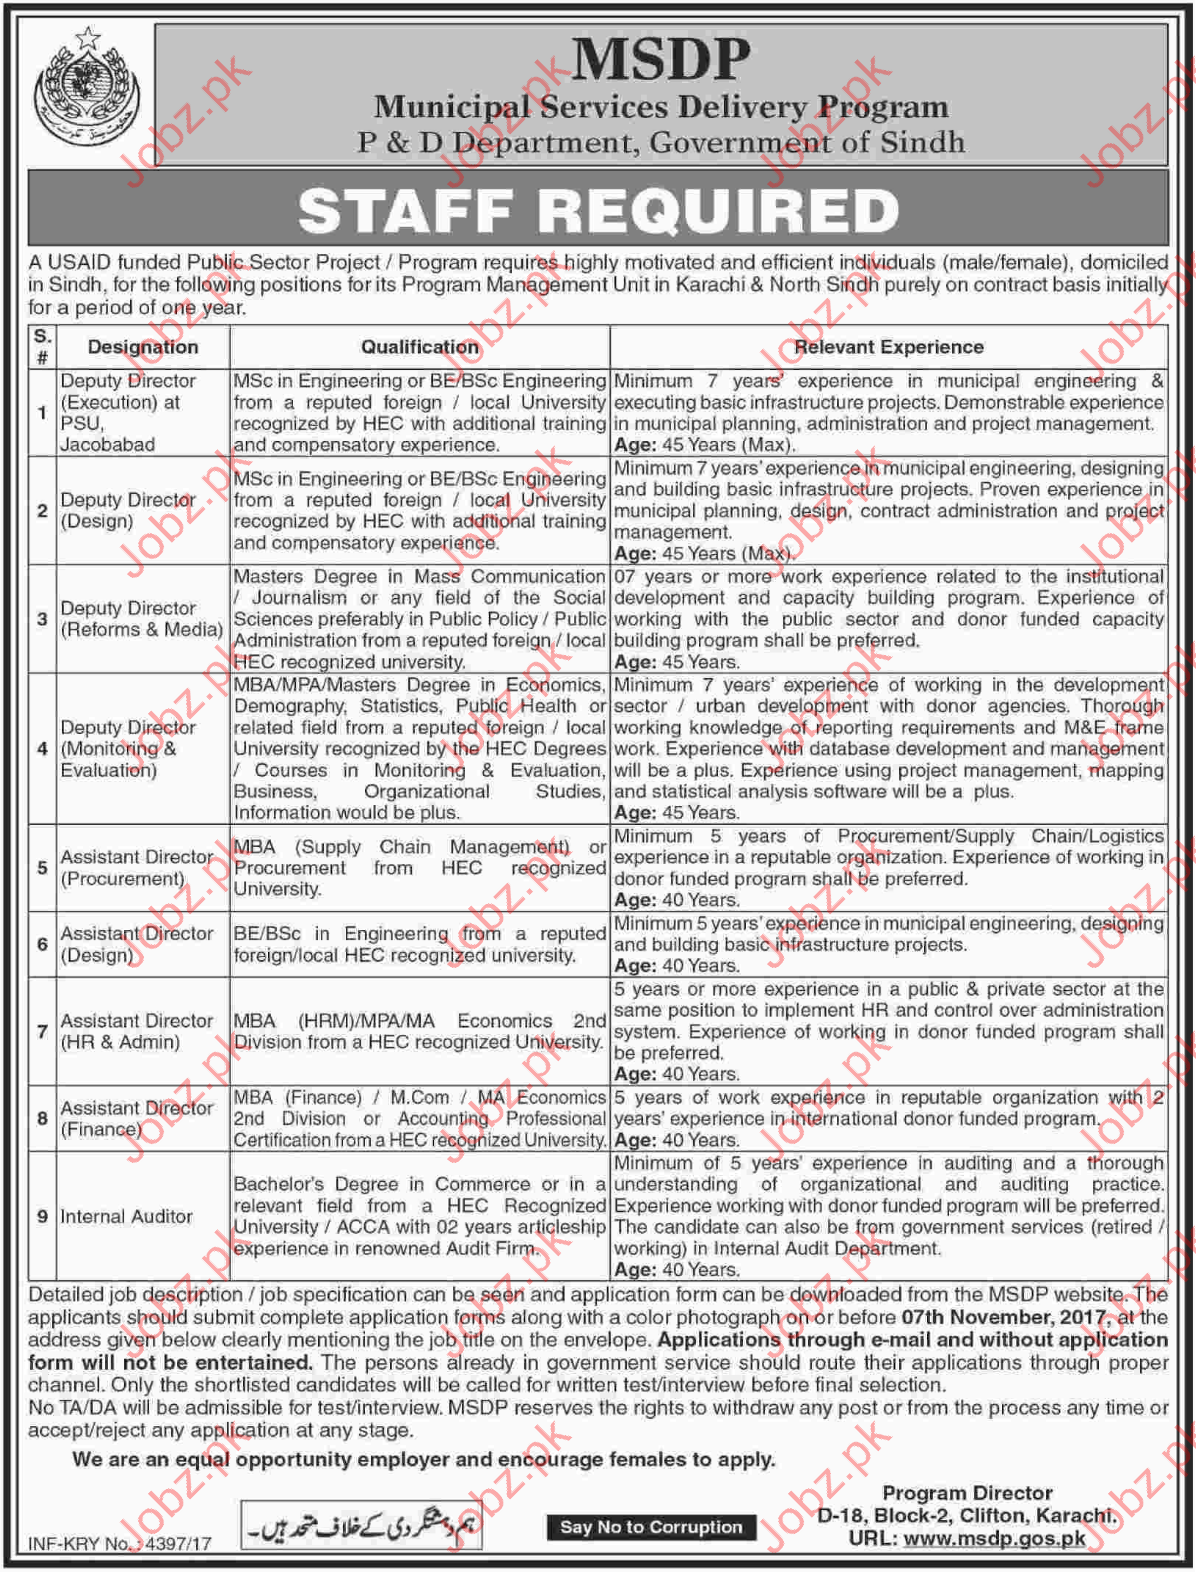 Municipal Services Delivery Program MSDP jobs 2017